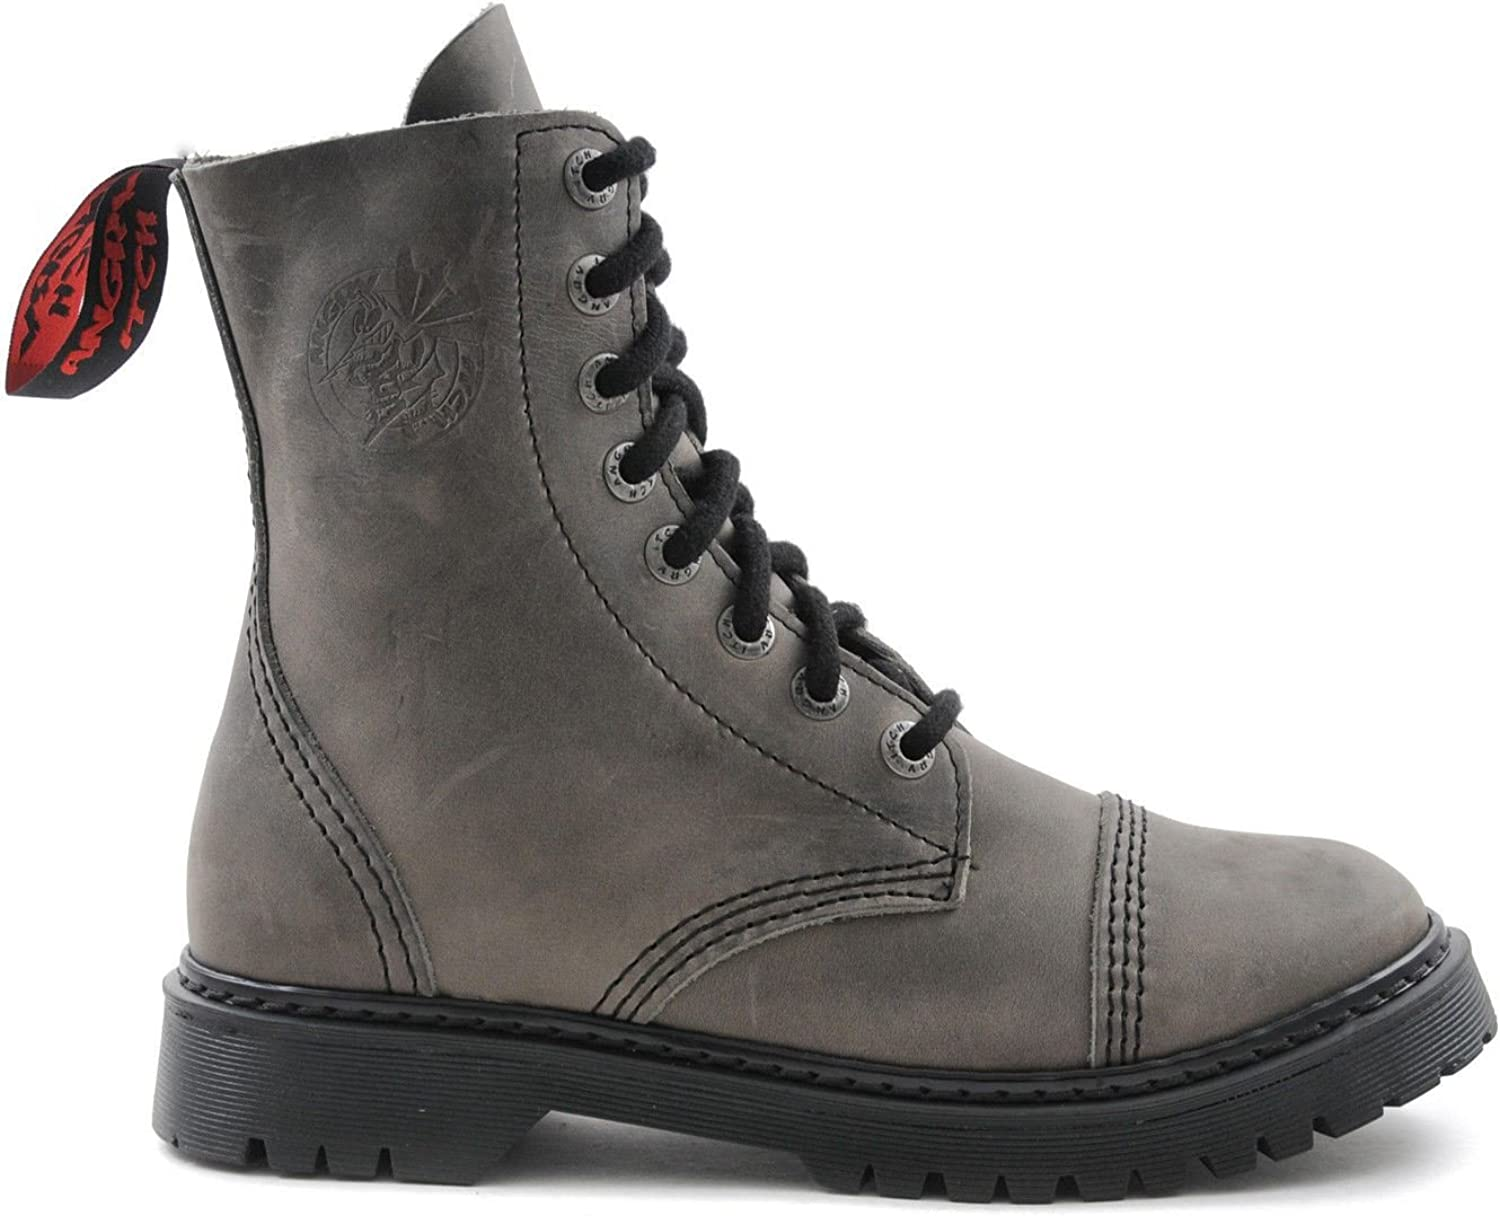 Angry Itch 8 Hole Punk Vintage Grey Leather Army Ranger Boot Light Sole